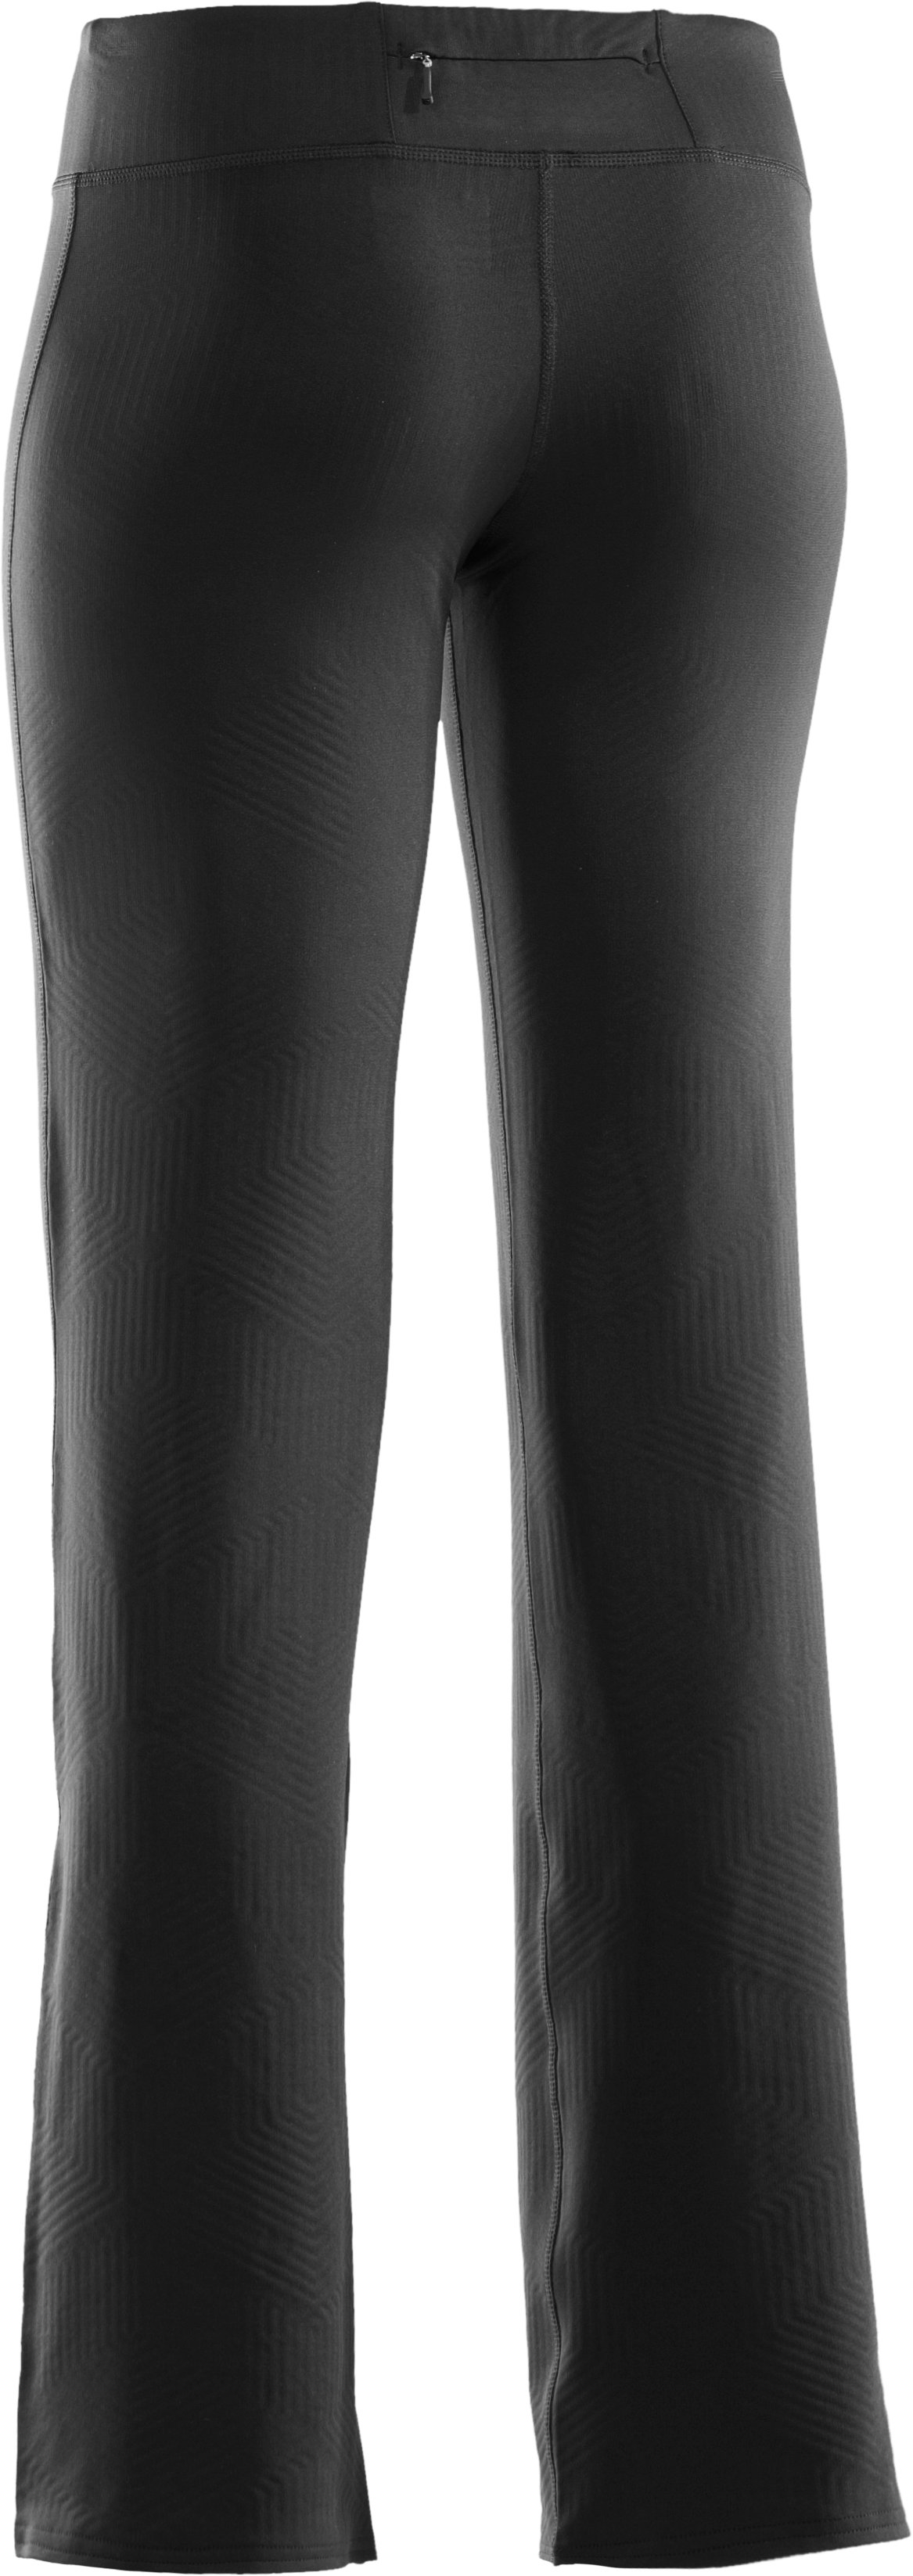 "Women's ColdGear® Infrared EVO 32"" Pant, Black , undefined"